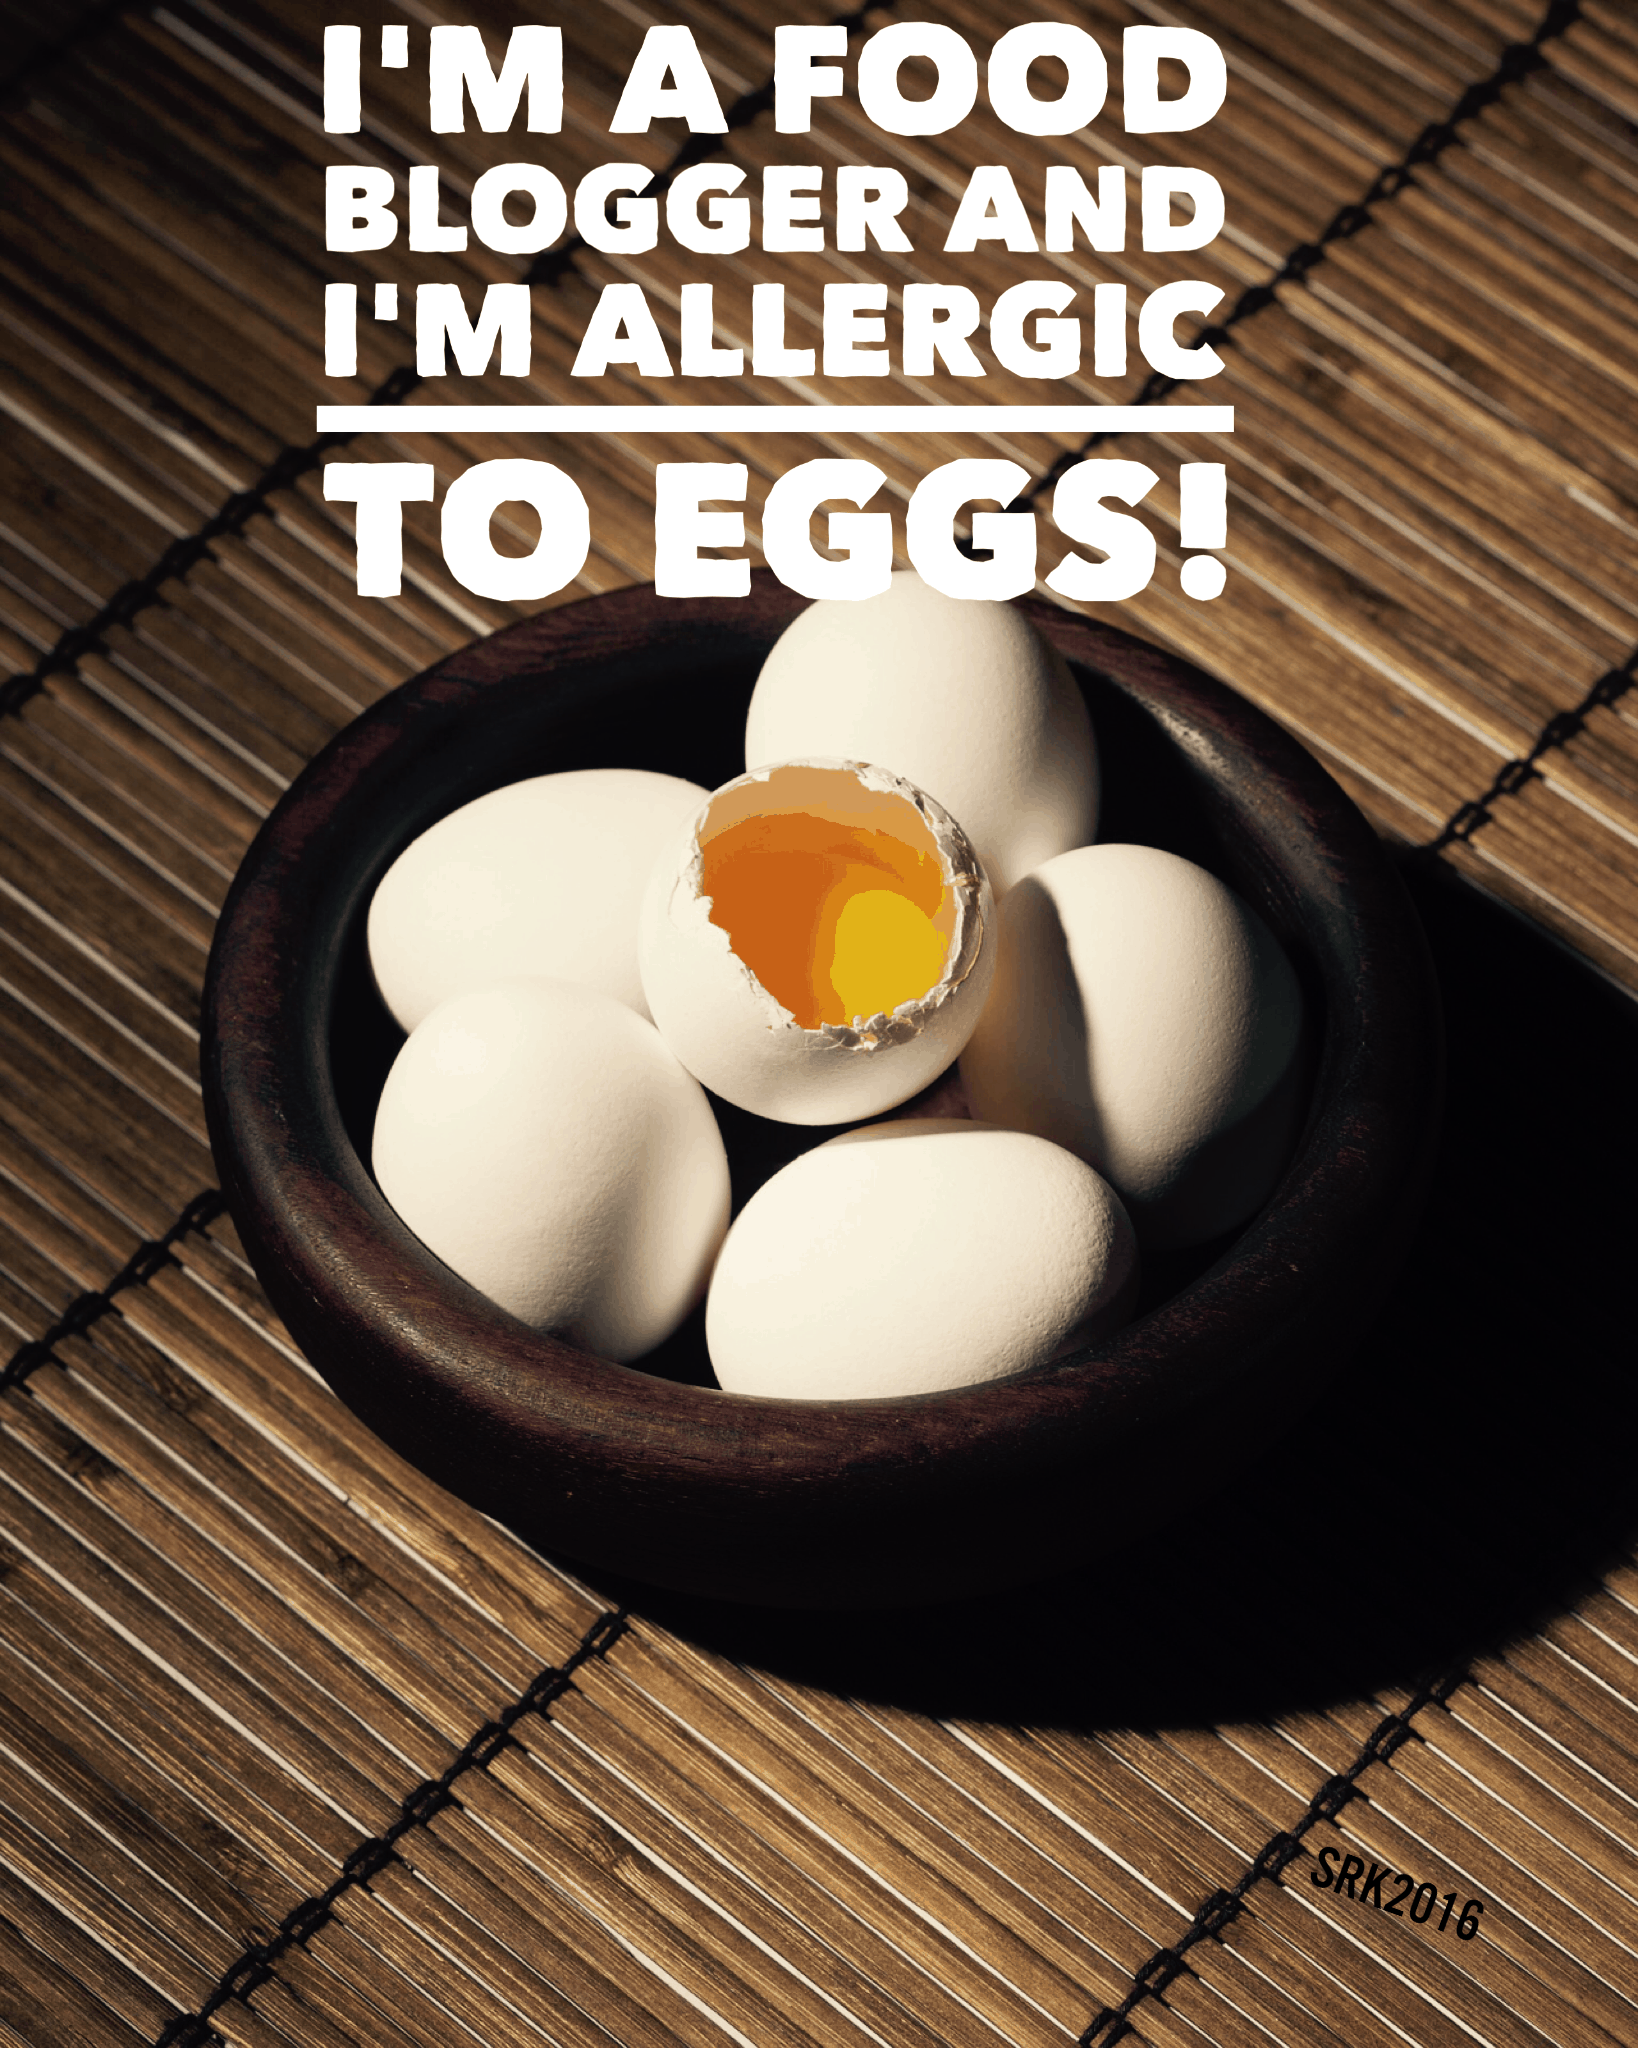 I'm a food blogger and I'm allergic to eggs